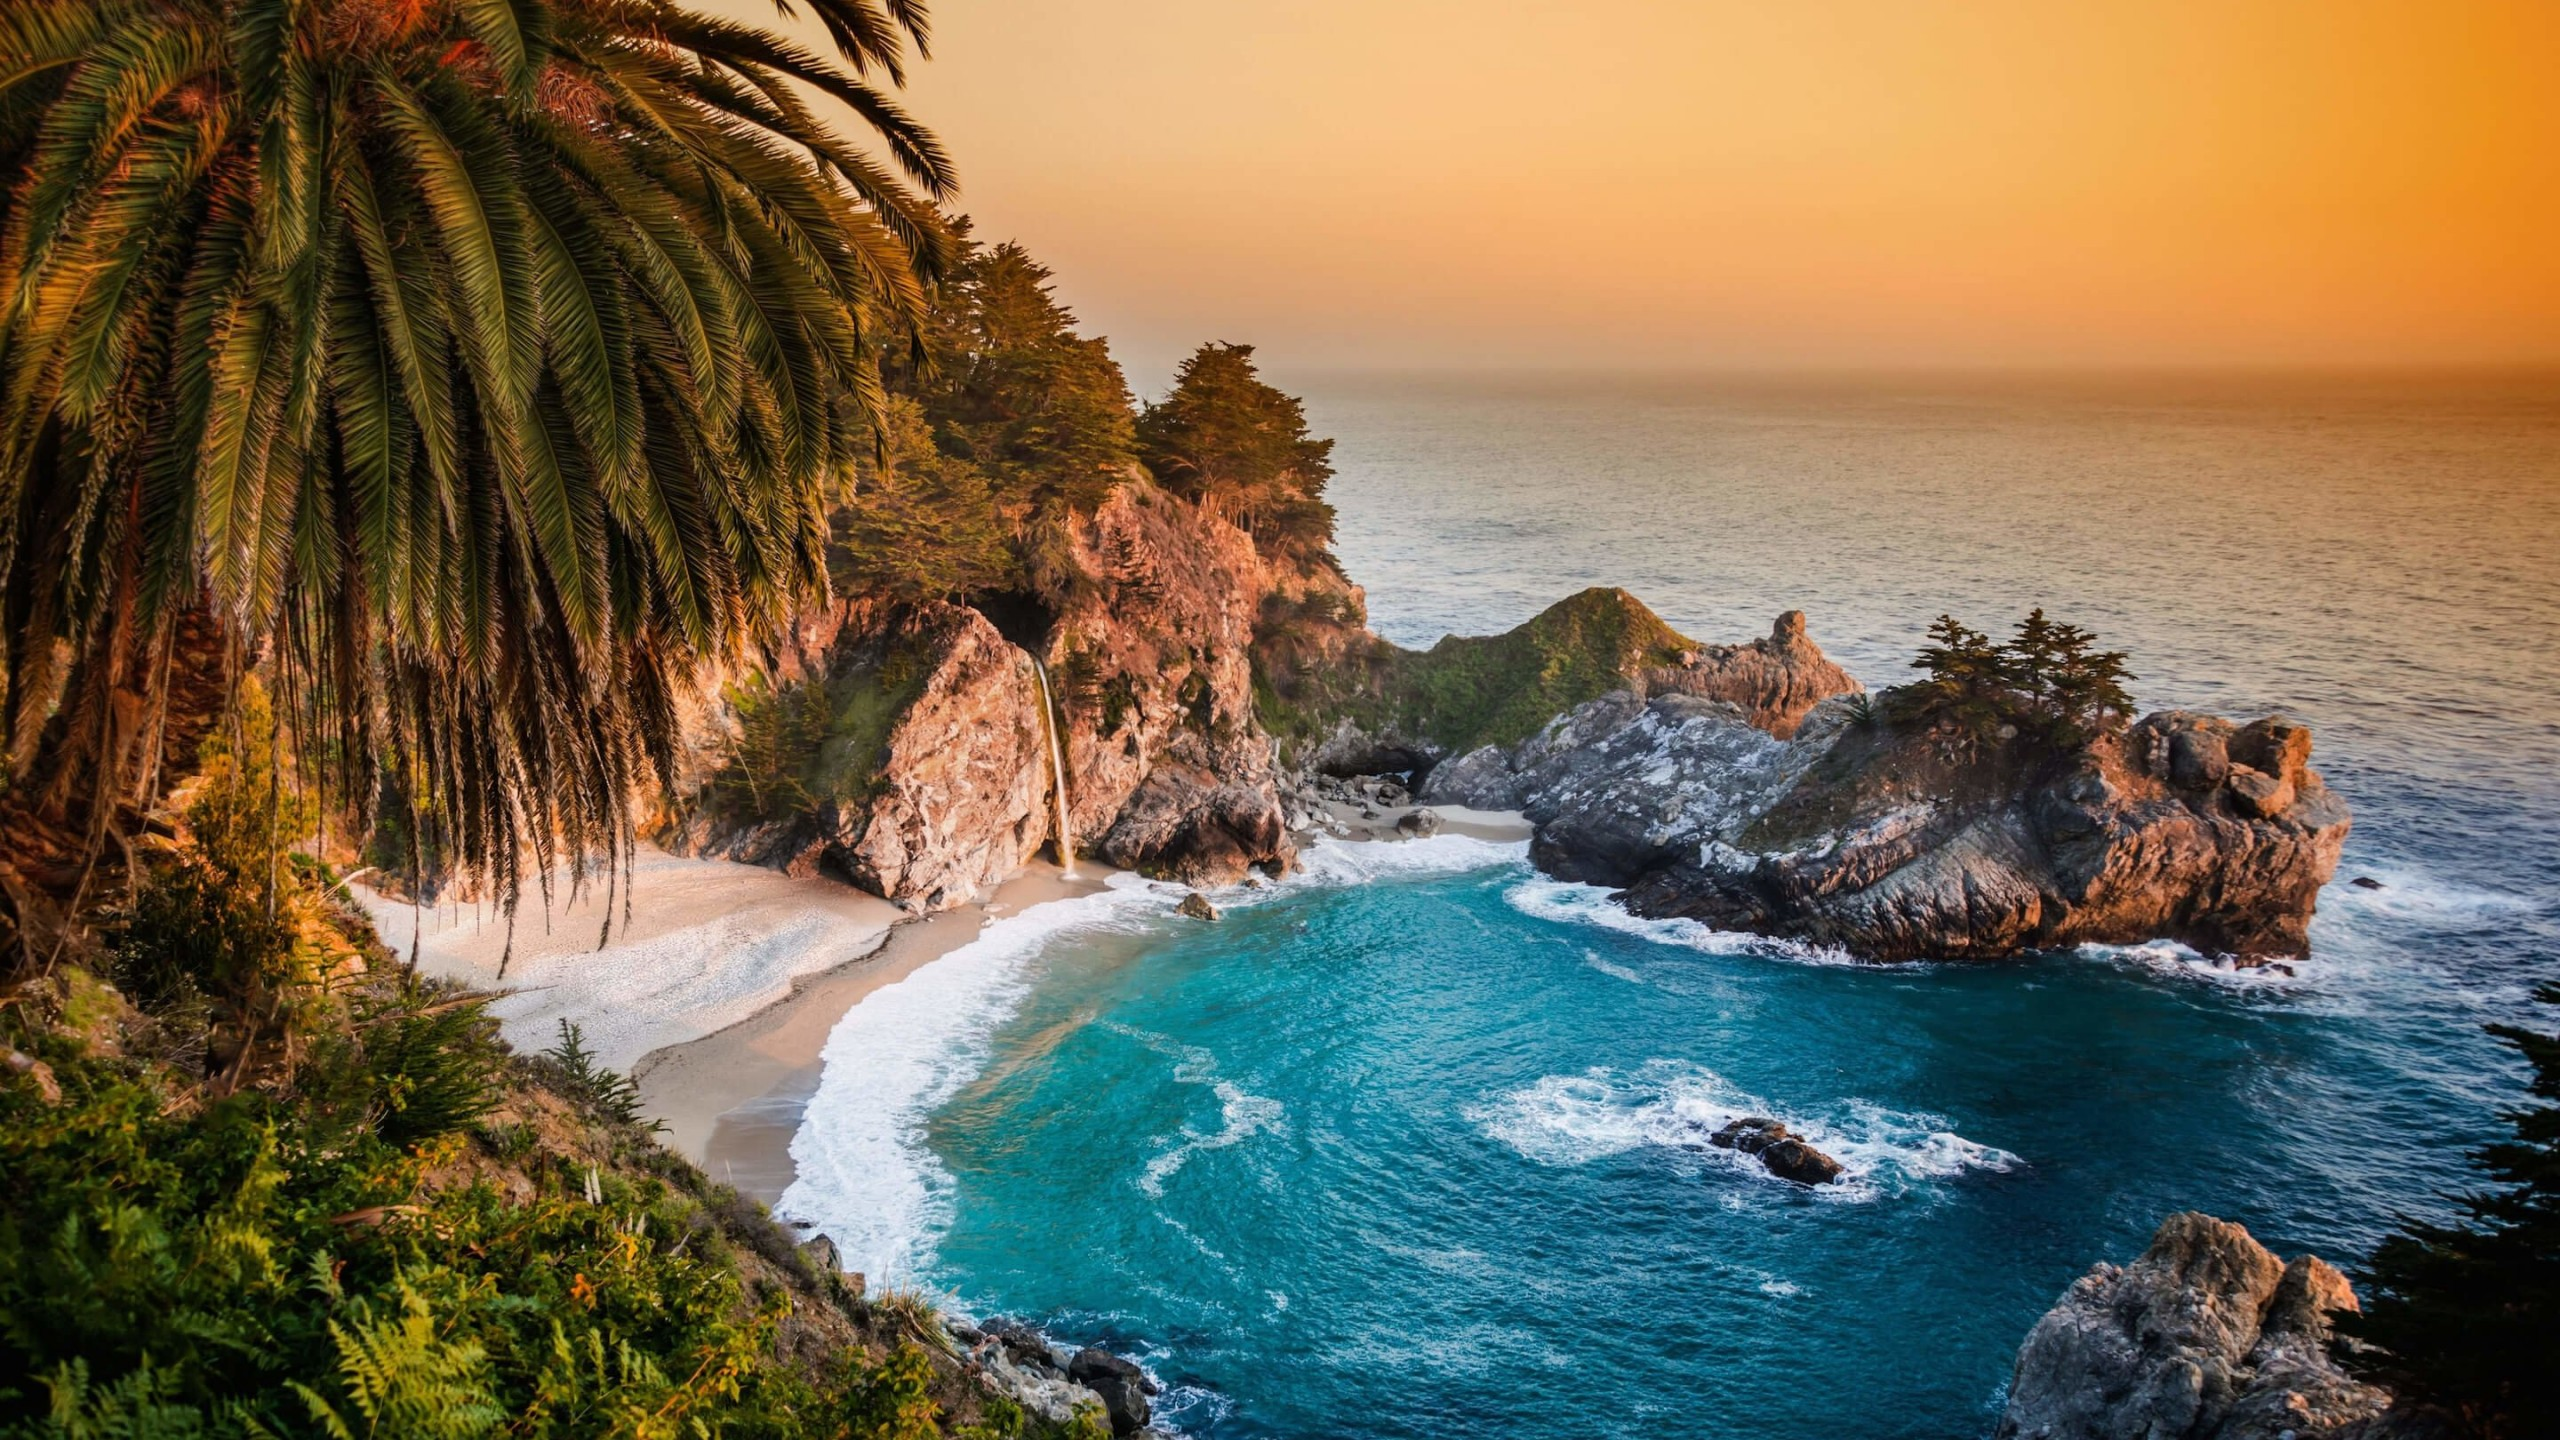 McWay Falls in Big Sur, California, USA Wallpaper for Social Media YouTube Channel Art